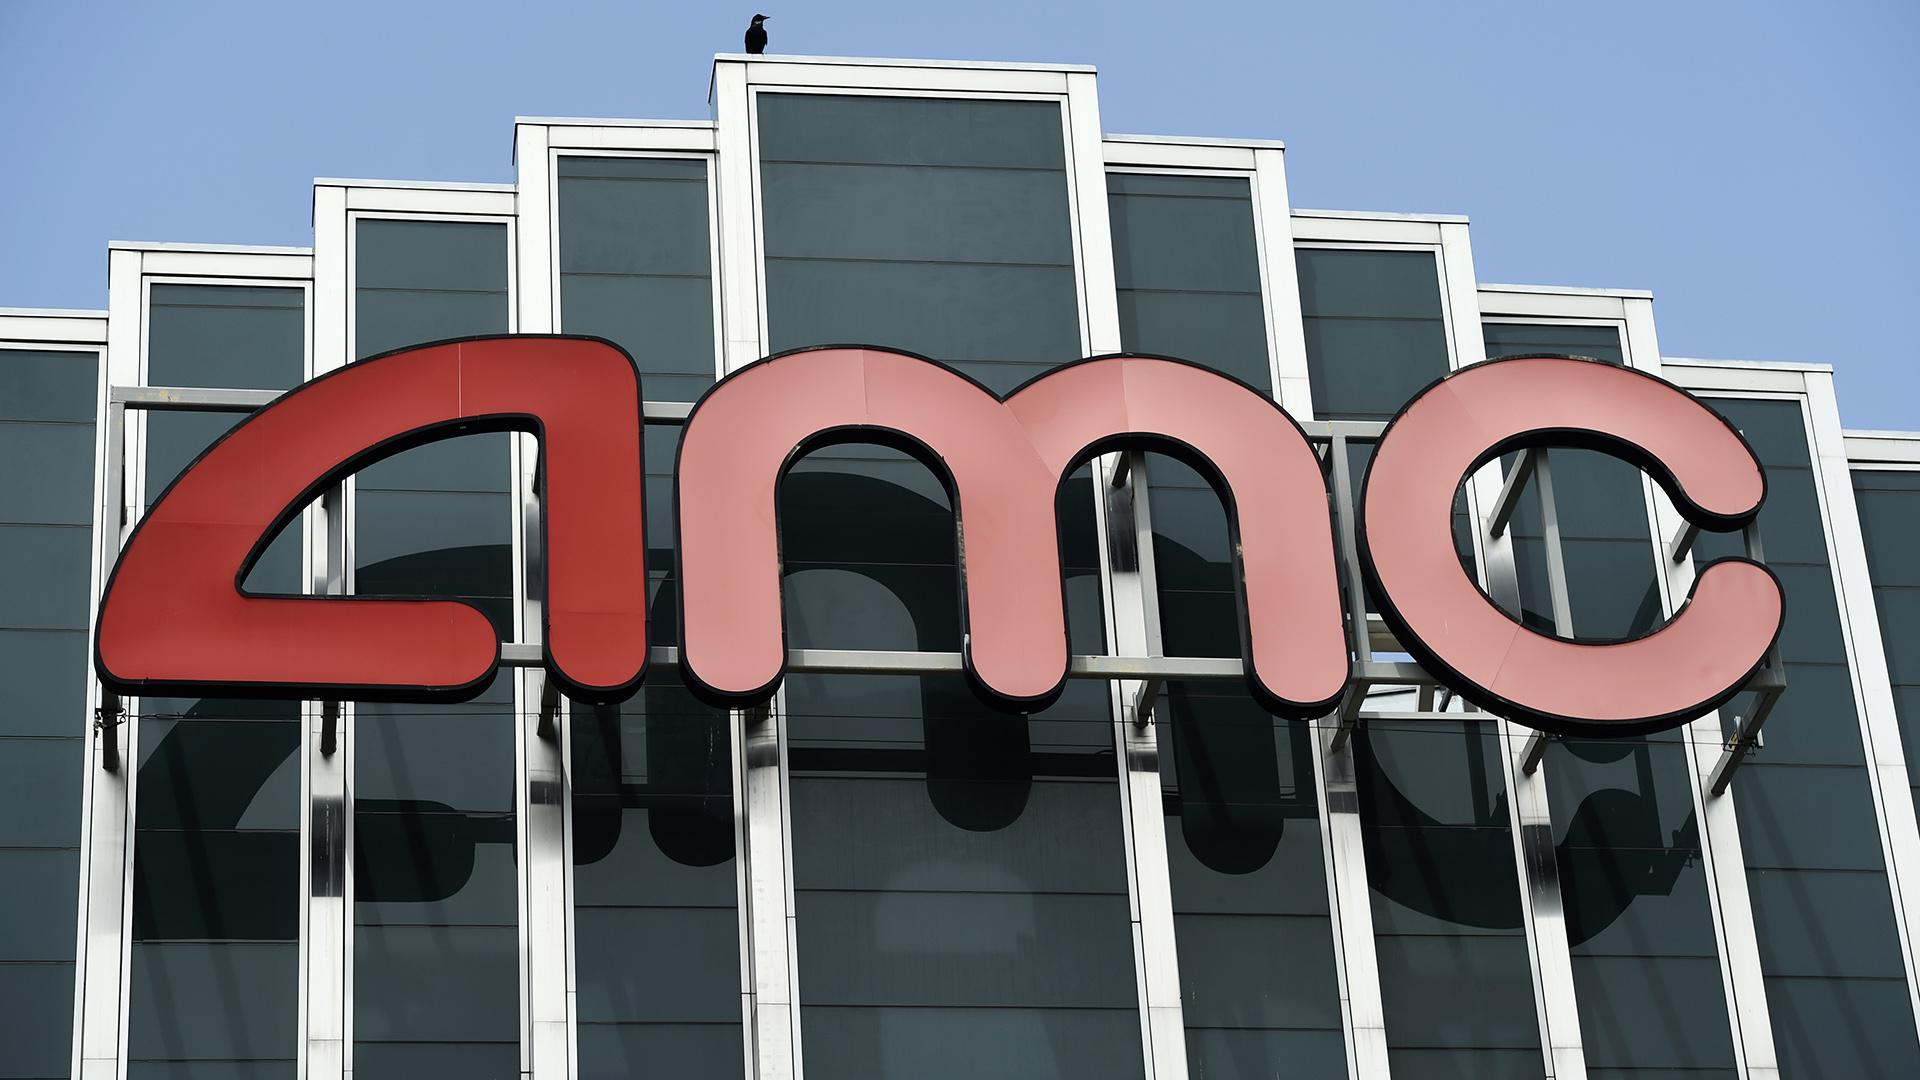 In this April 29, 2020 file photo, the AMC sign appears at AMC Burbank 16 movie theater complex in Burbank, Calif. (AP Photo / Chris Pizzello, File)